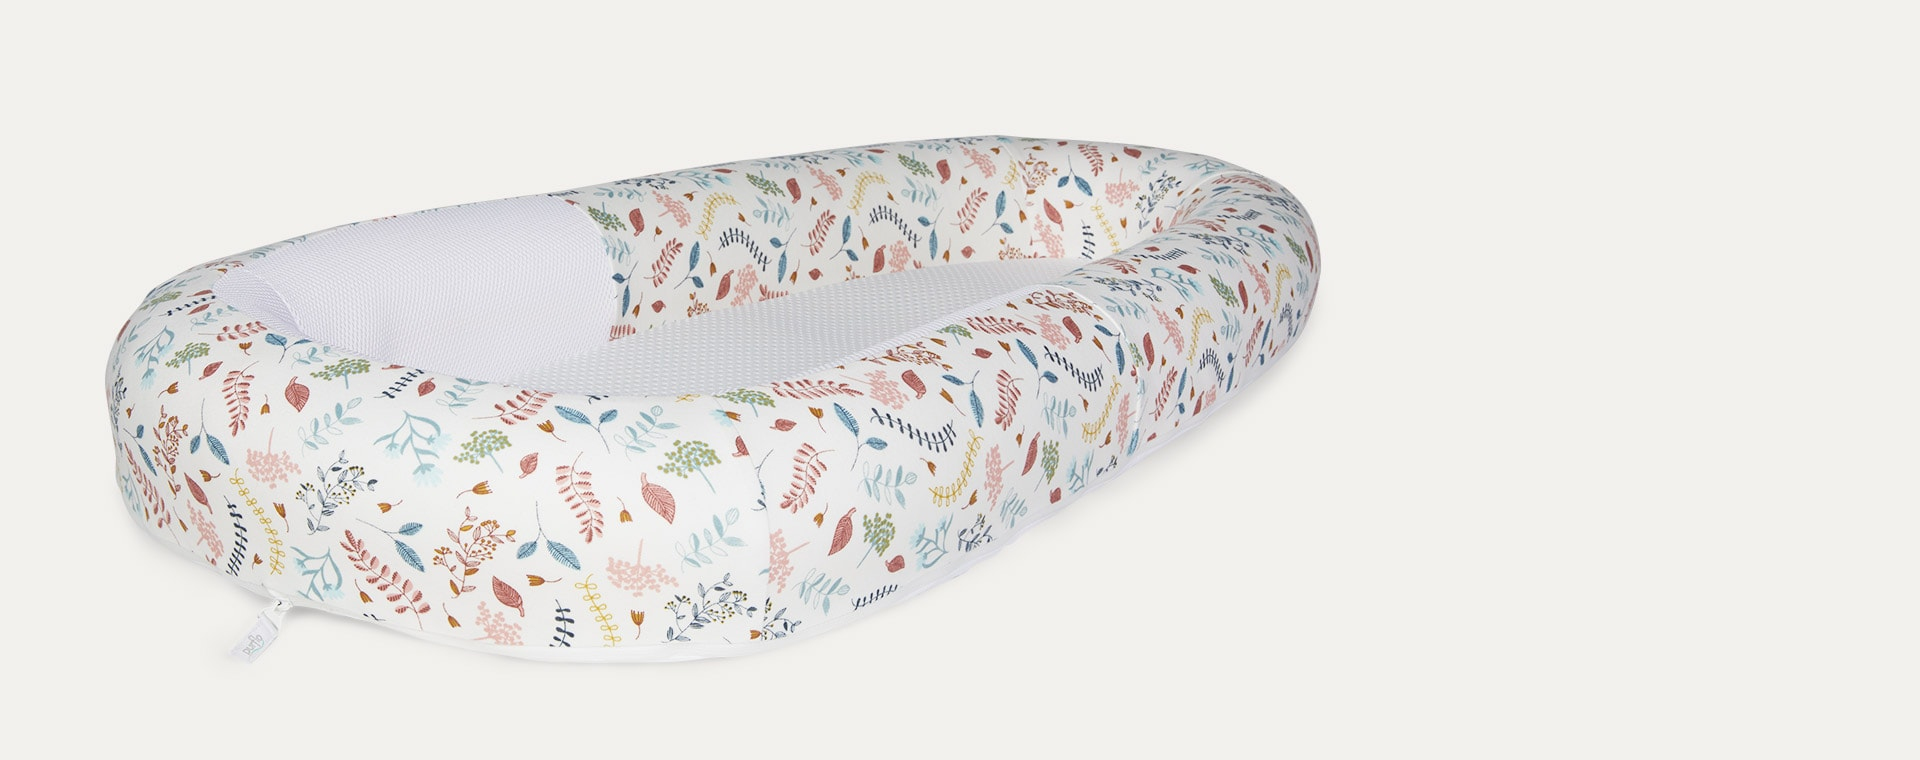 Botanical PurFlo Sleep Tight Baby Bed